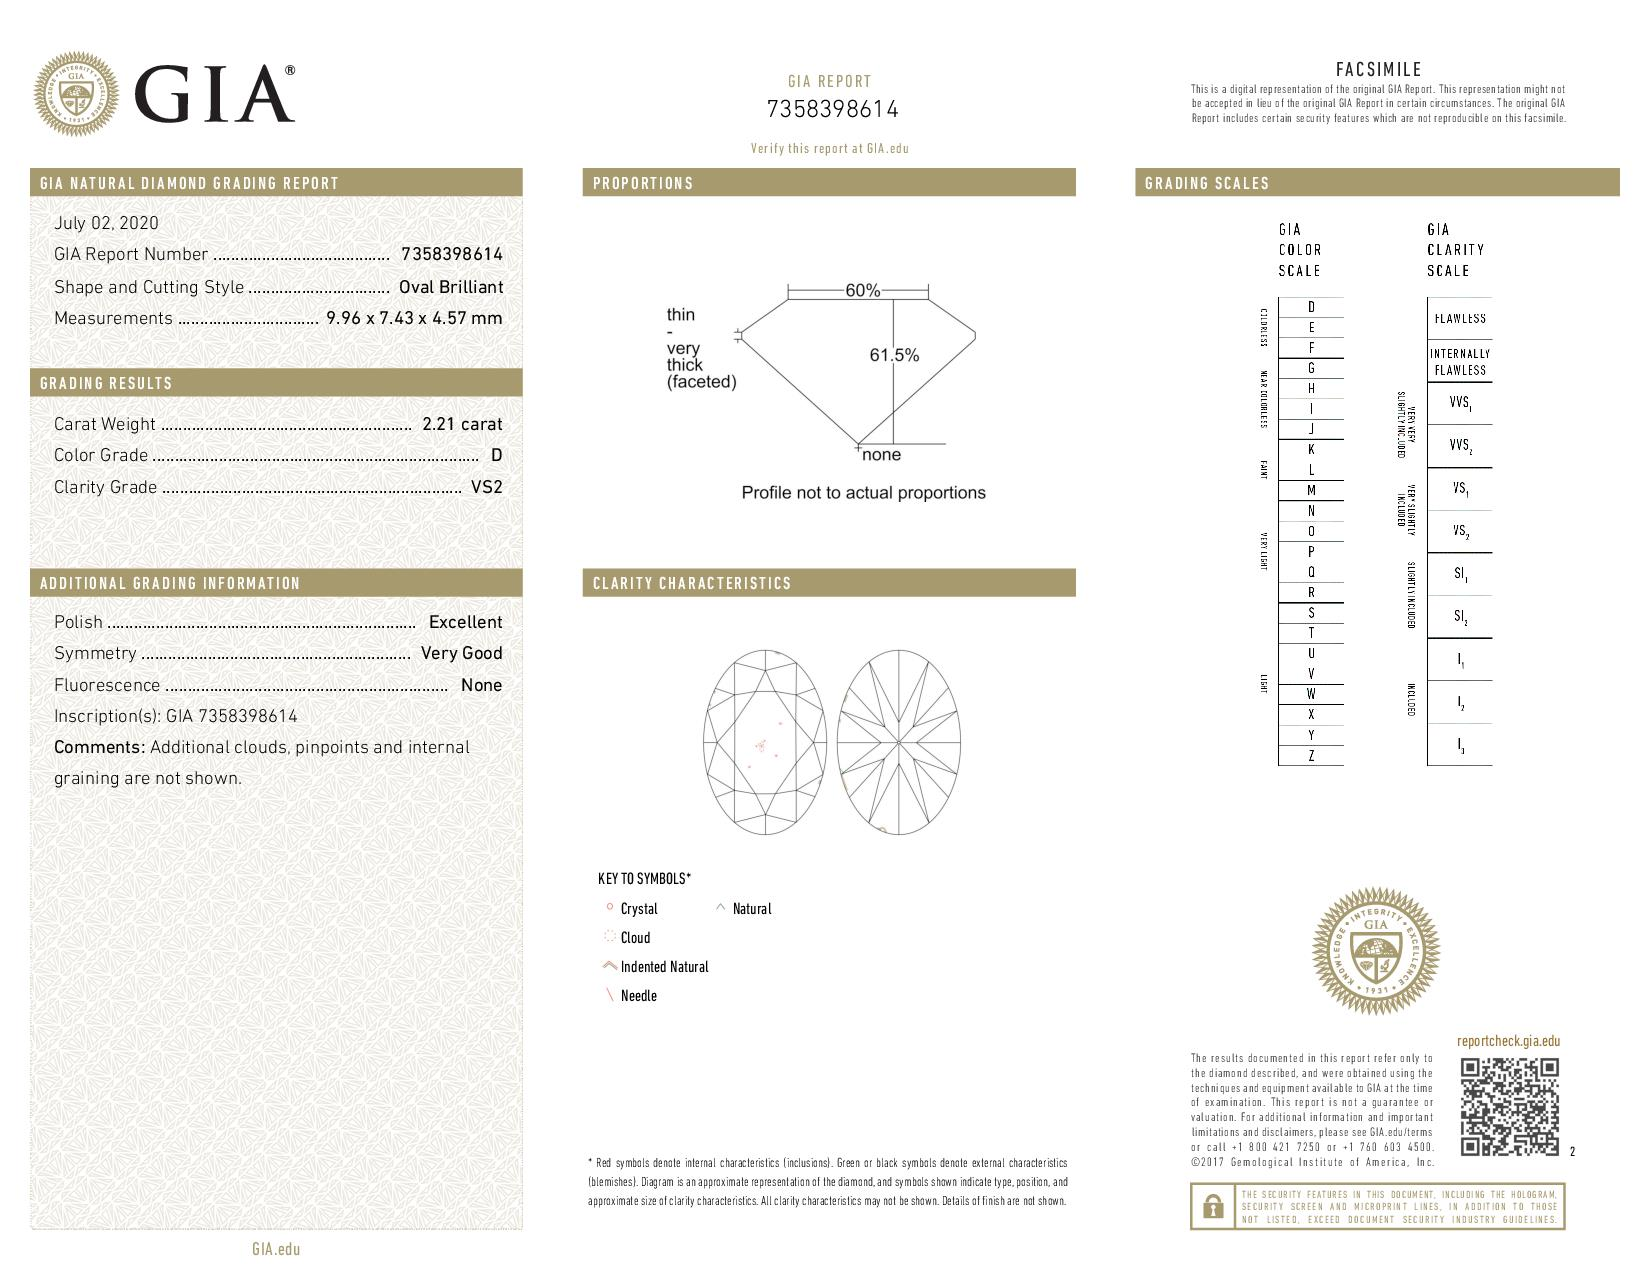 This is a 2.21 carat oval shape, D color, VS2 clarity natural diamond accompanied by a GIA grading report.